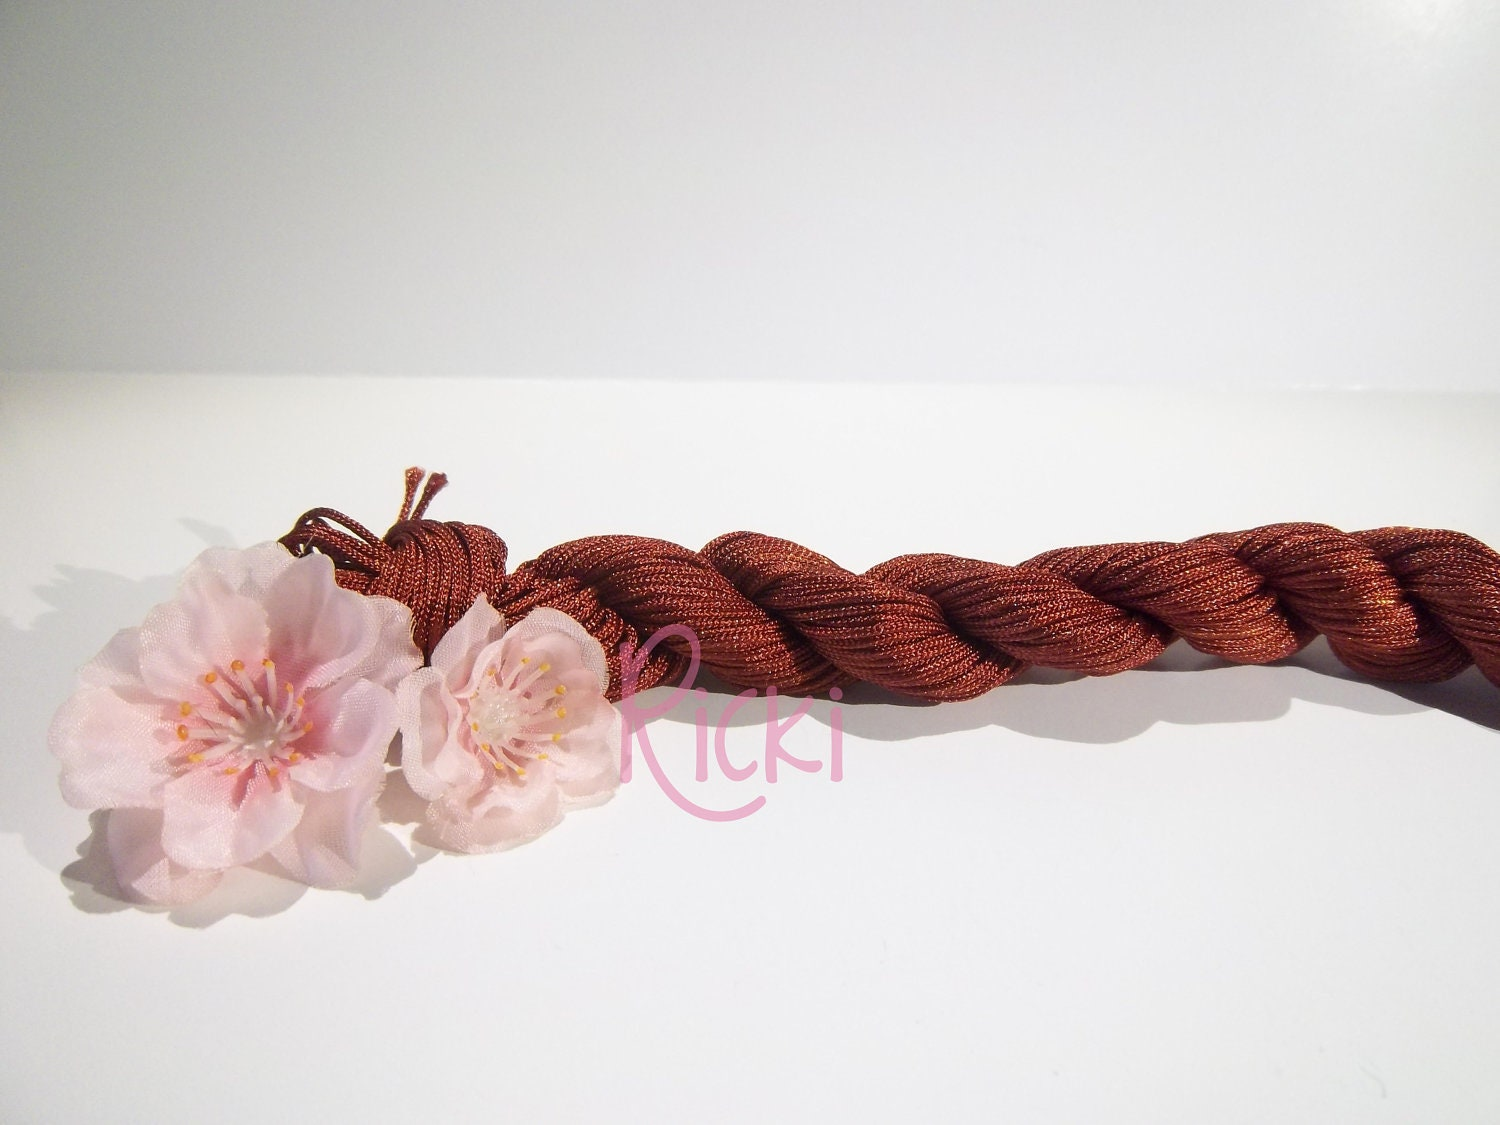 how to finish off macrame knotting